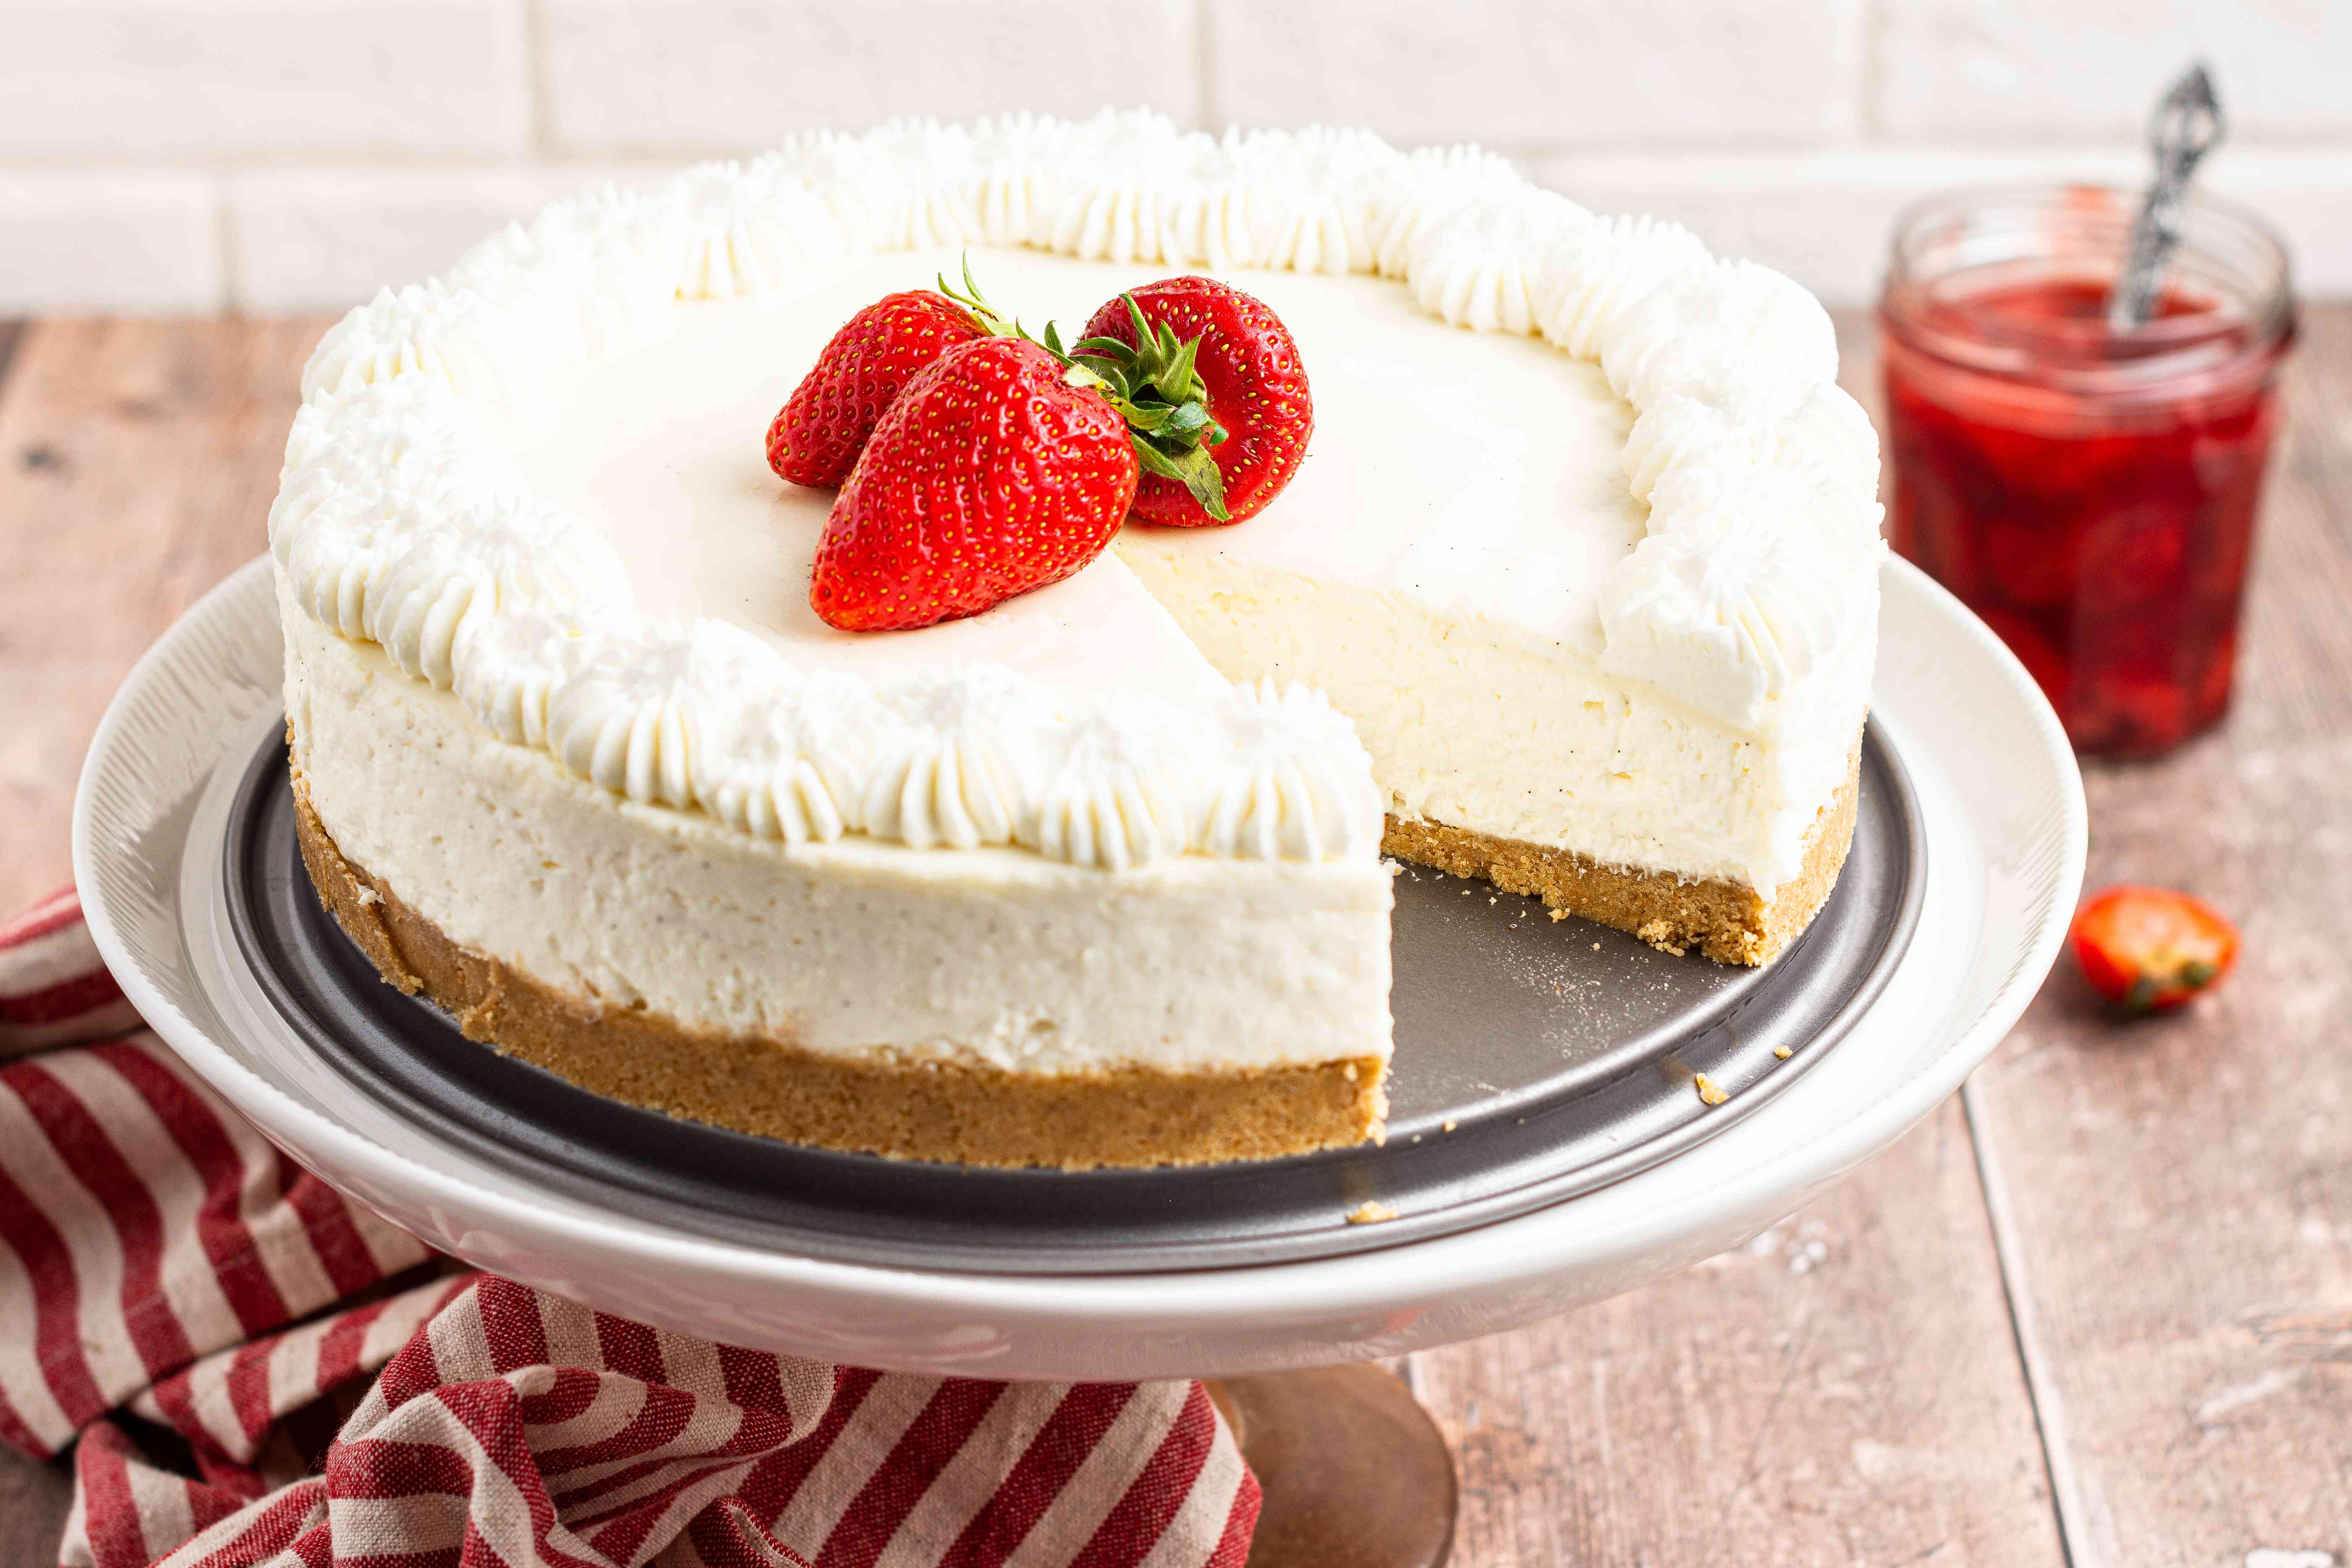 A cake stand with No bake cheesecake topped with fresh strawberries with a slice removed.